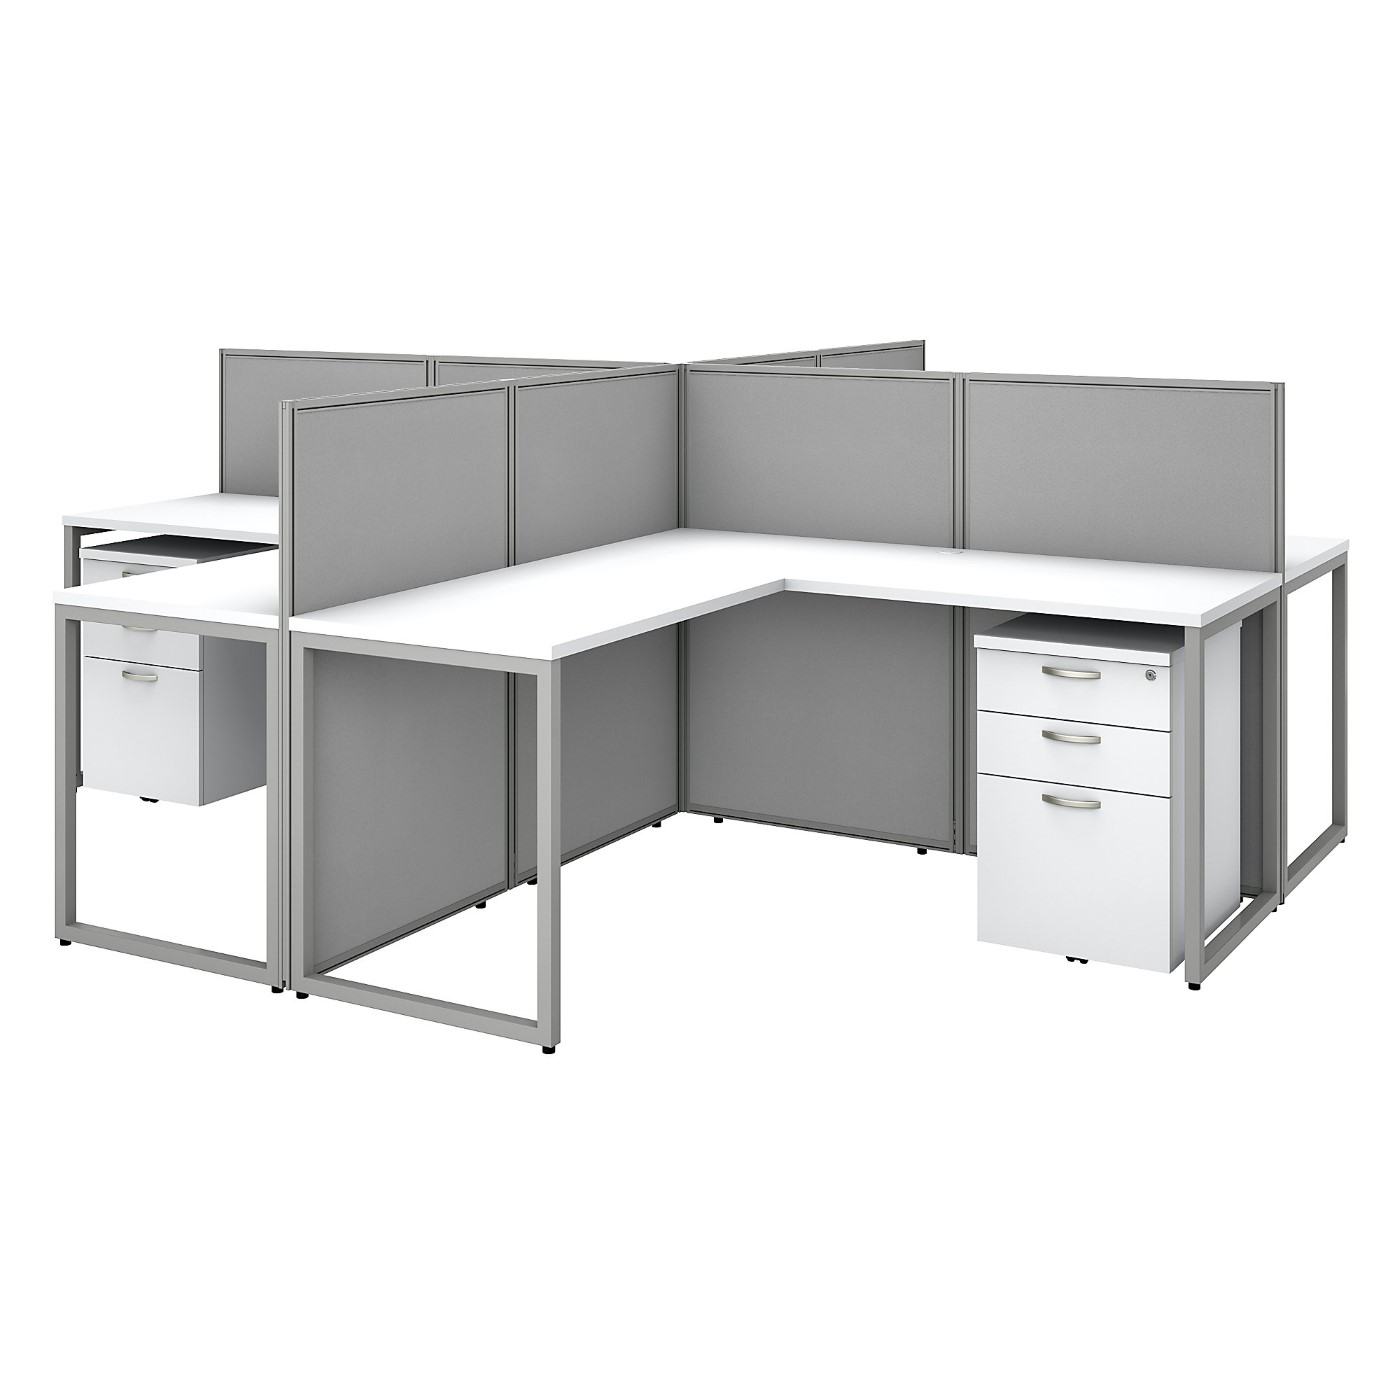 BUSH BUSINESS FURNITURE EASY OFFICE 60W 4 PERSON L SHAPED CUBICLE DESK WITH DRAWERS AND 45H PANELS. FREE SHIPPING